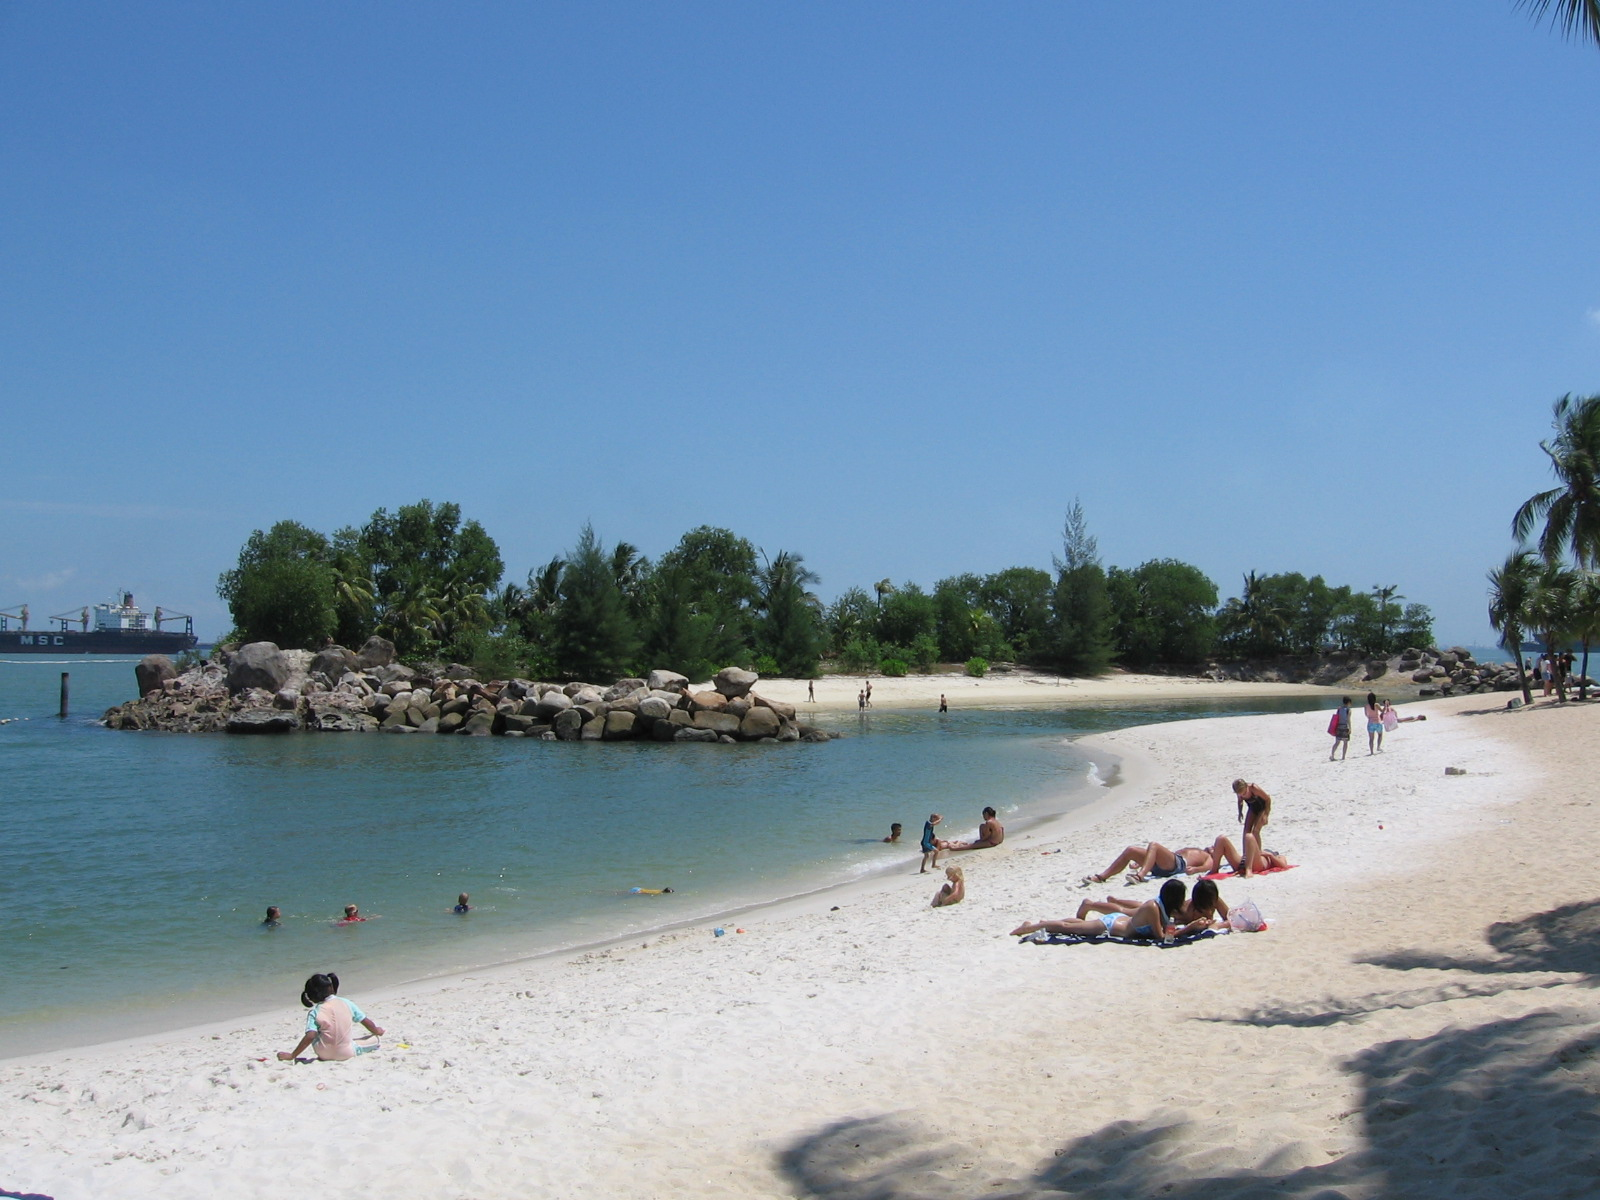 A Perfect Holiday and Family Vacation on Siloso Beach, Singapore